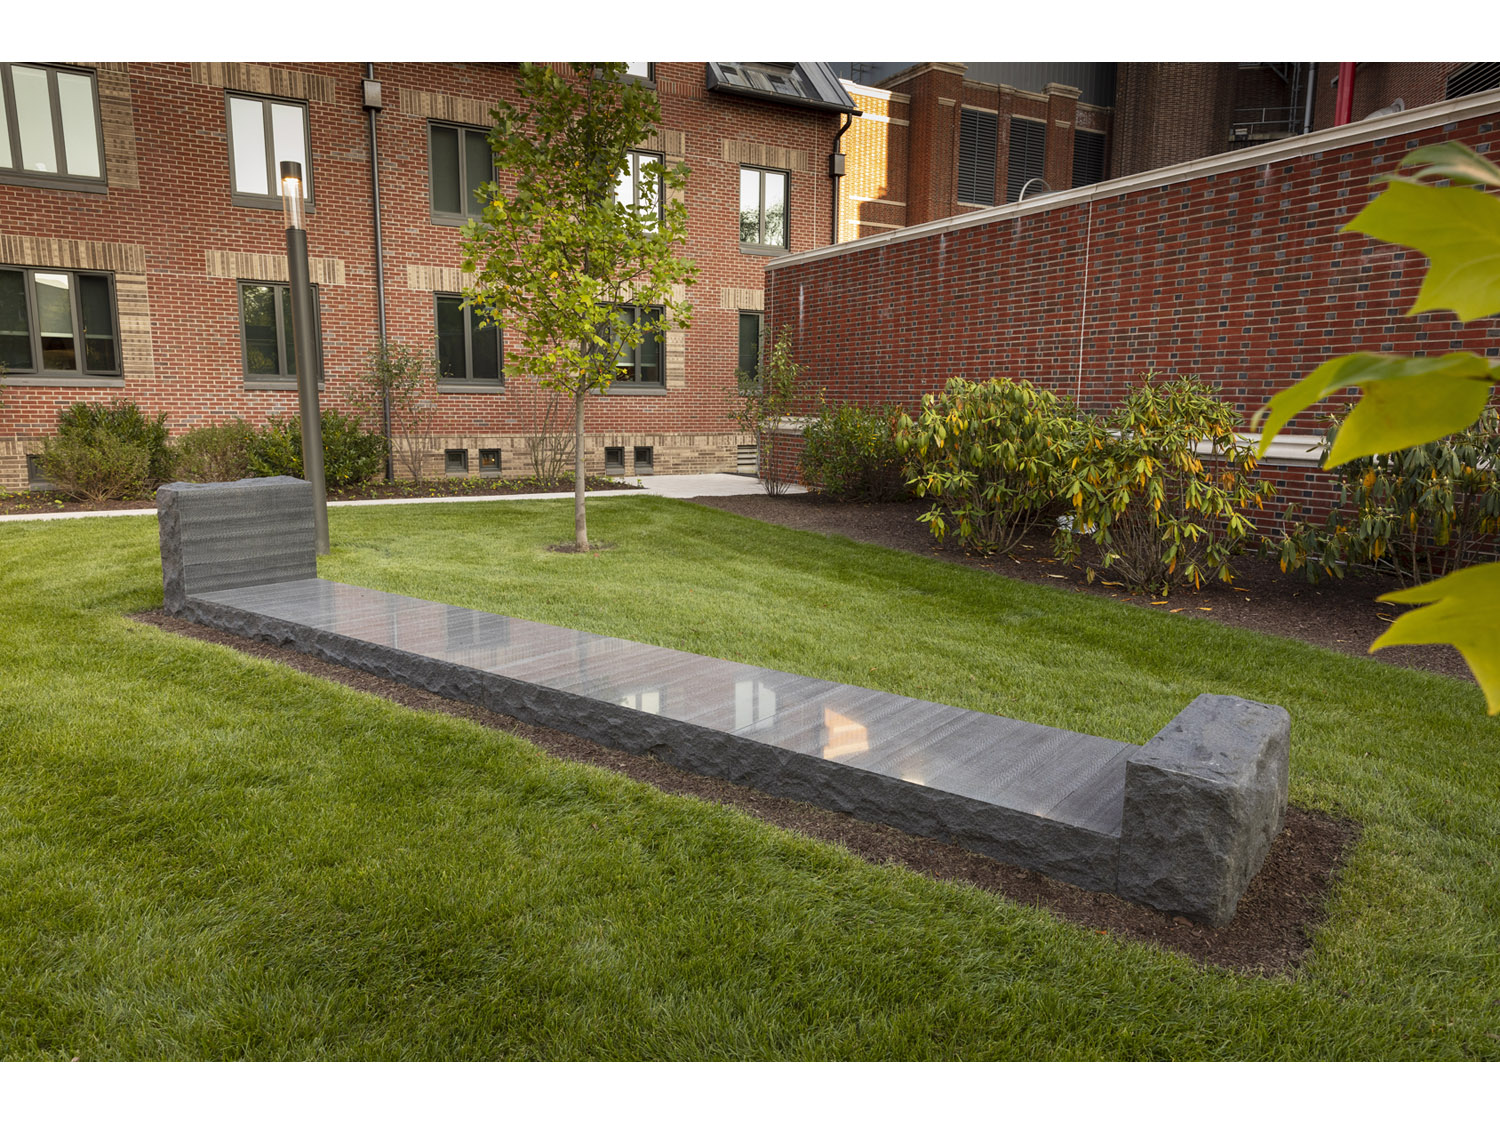 04 Yale.Granite Bed. Harold Shapiro.10.30.18.jpg